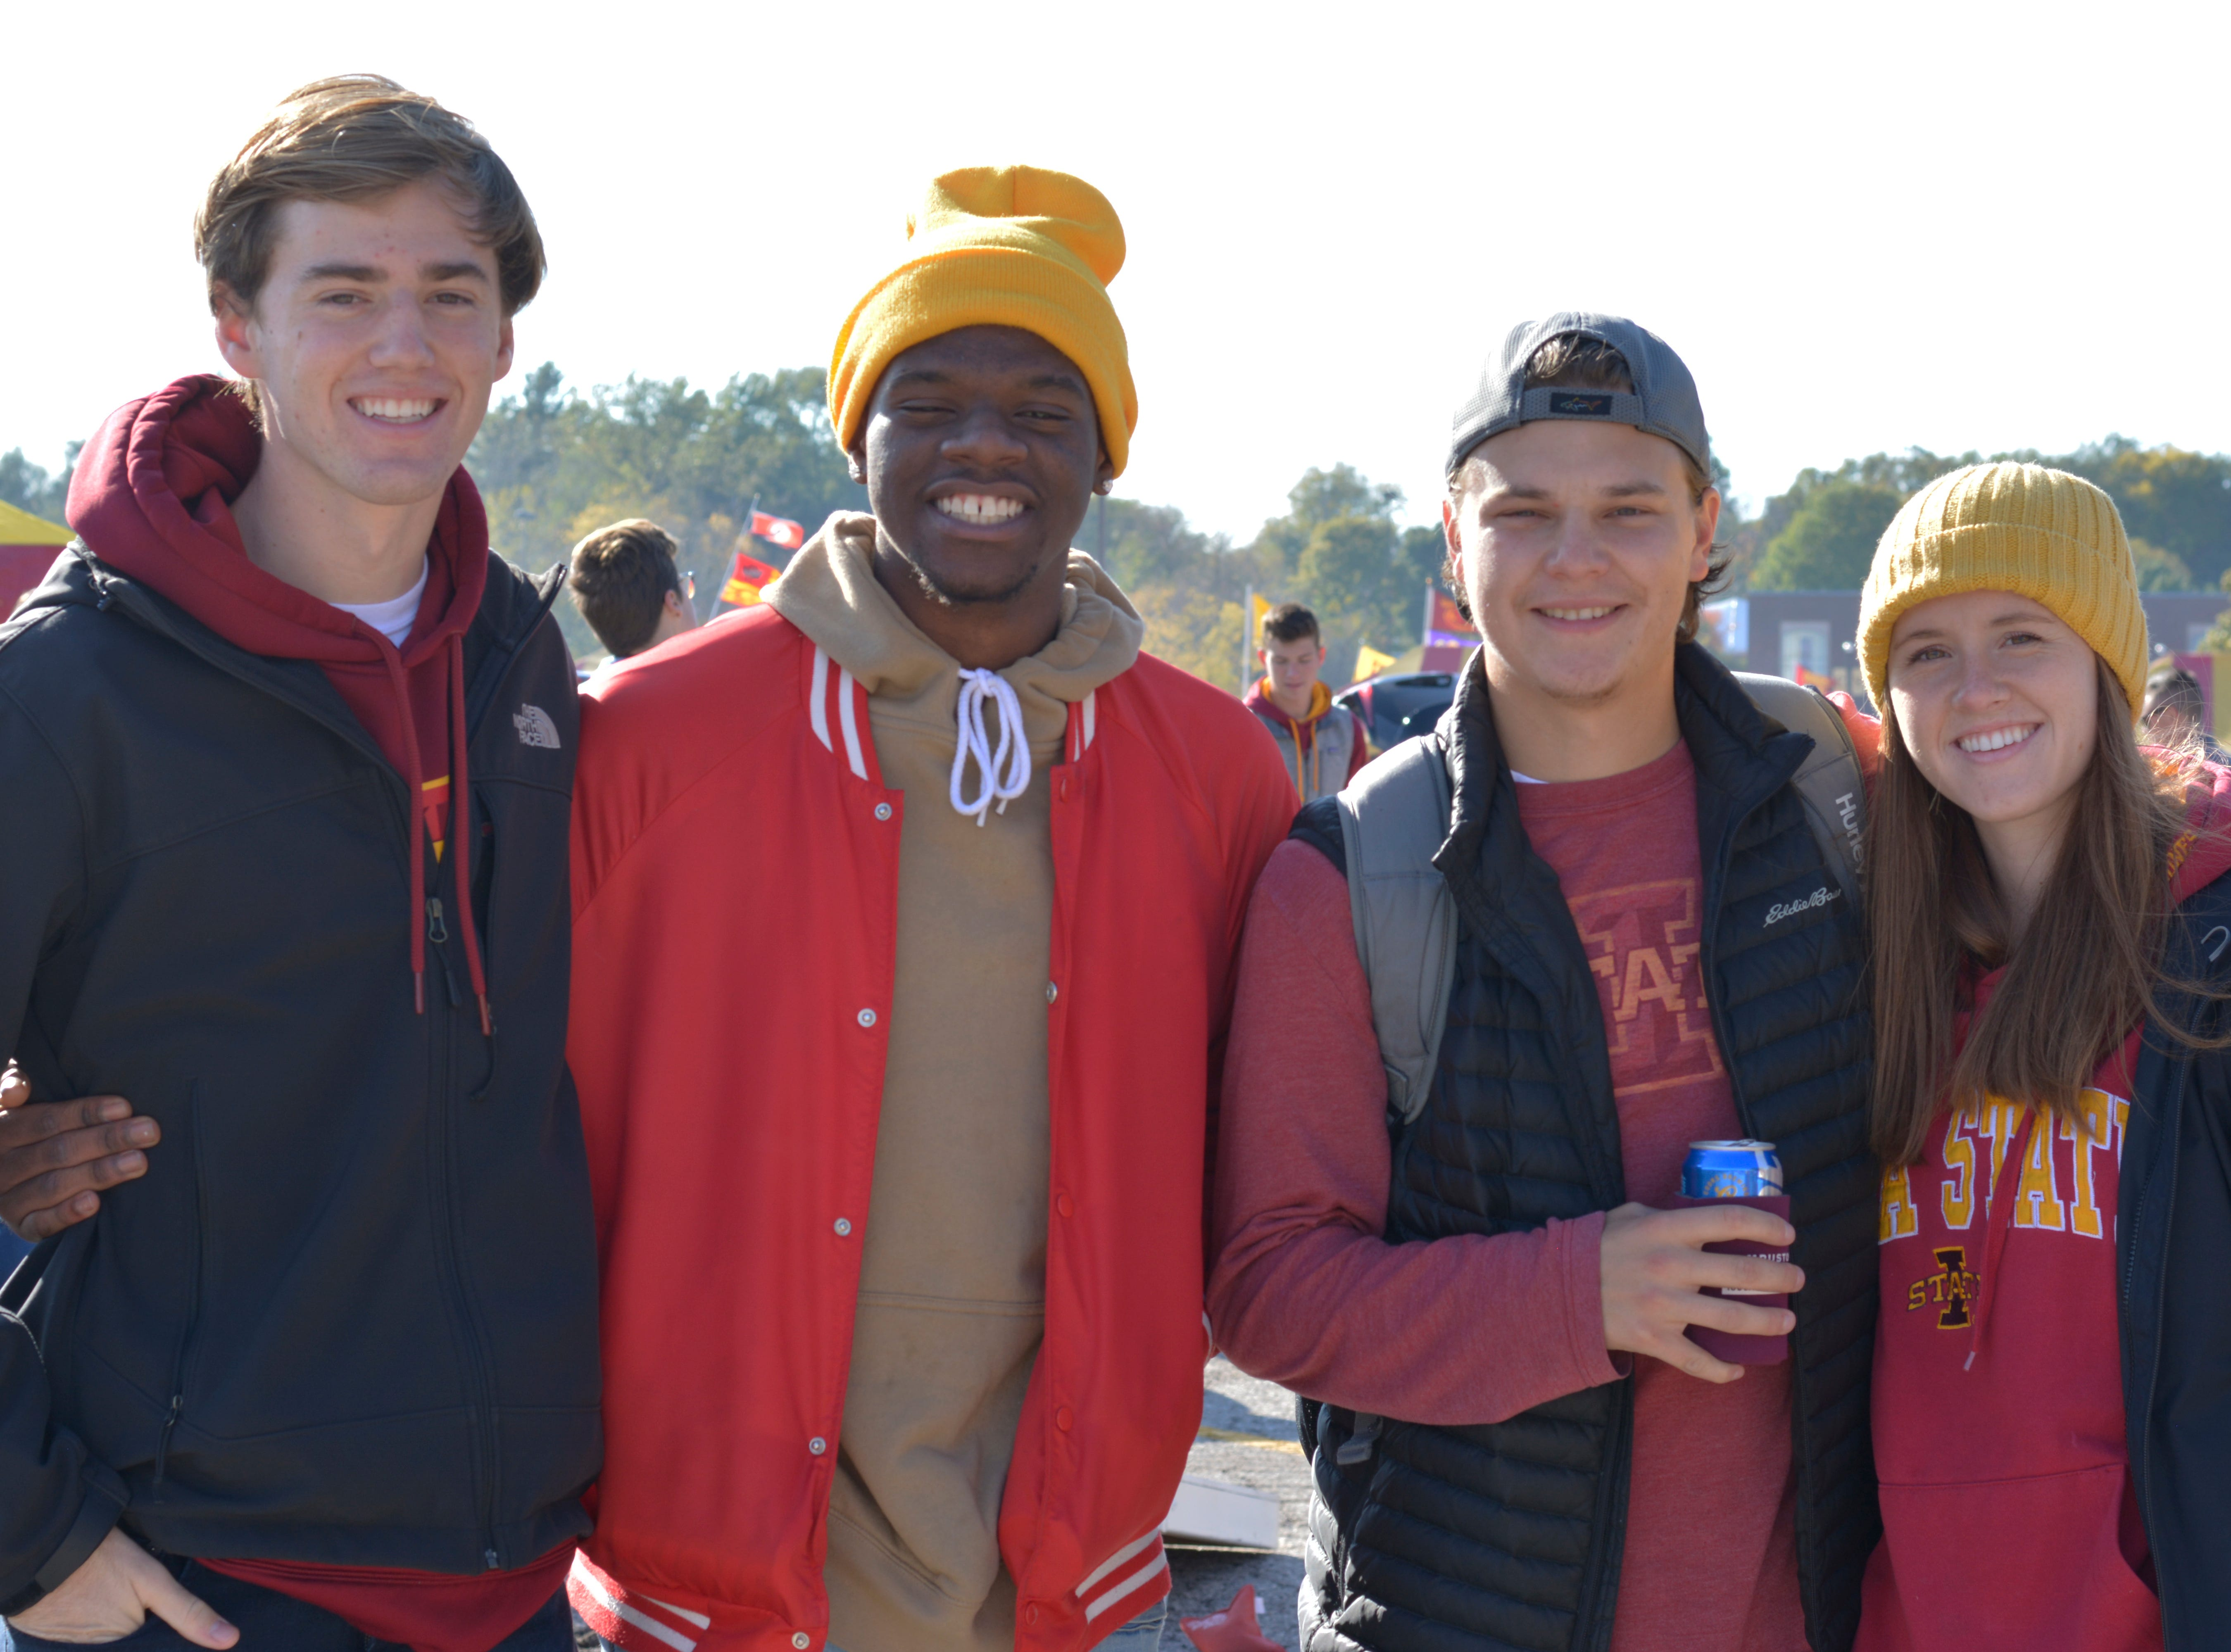 Isaac Buatti, (from left) Scooter Hickman, Jordan Golla and Chelsea Benedict before the Iowa State University football game against West Virginia in Ames on Oct. 13.